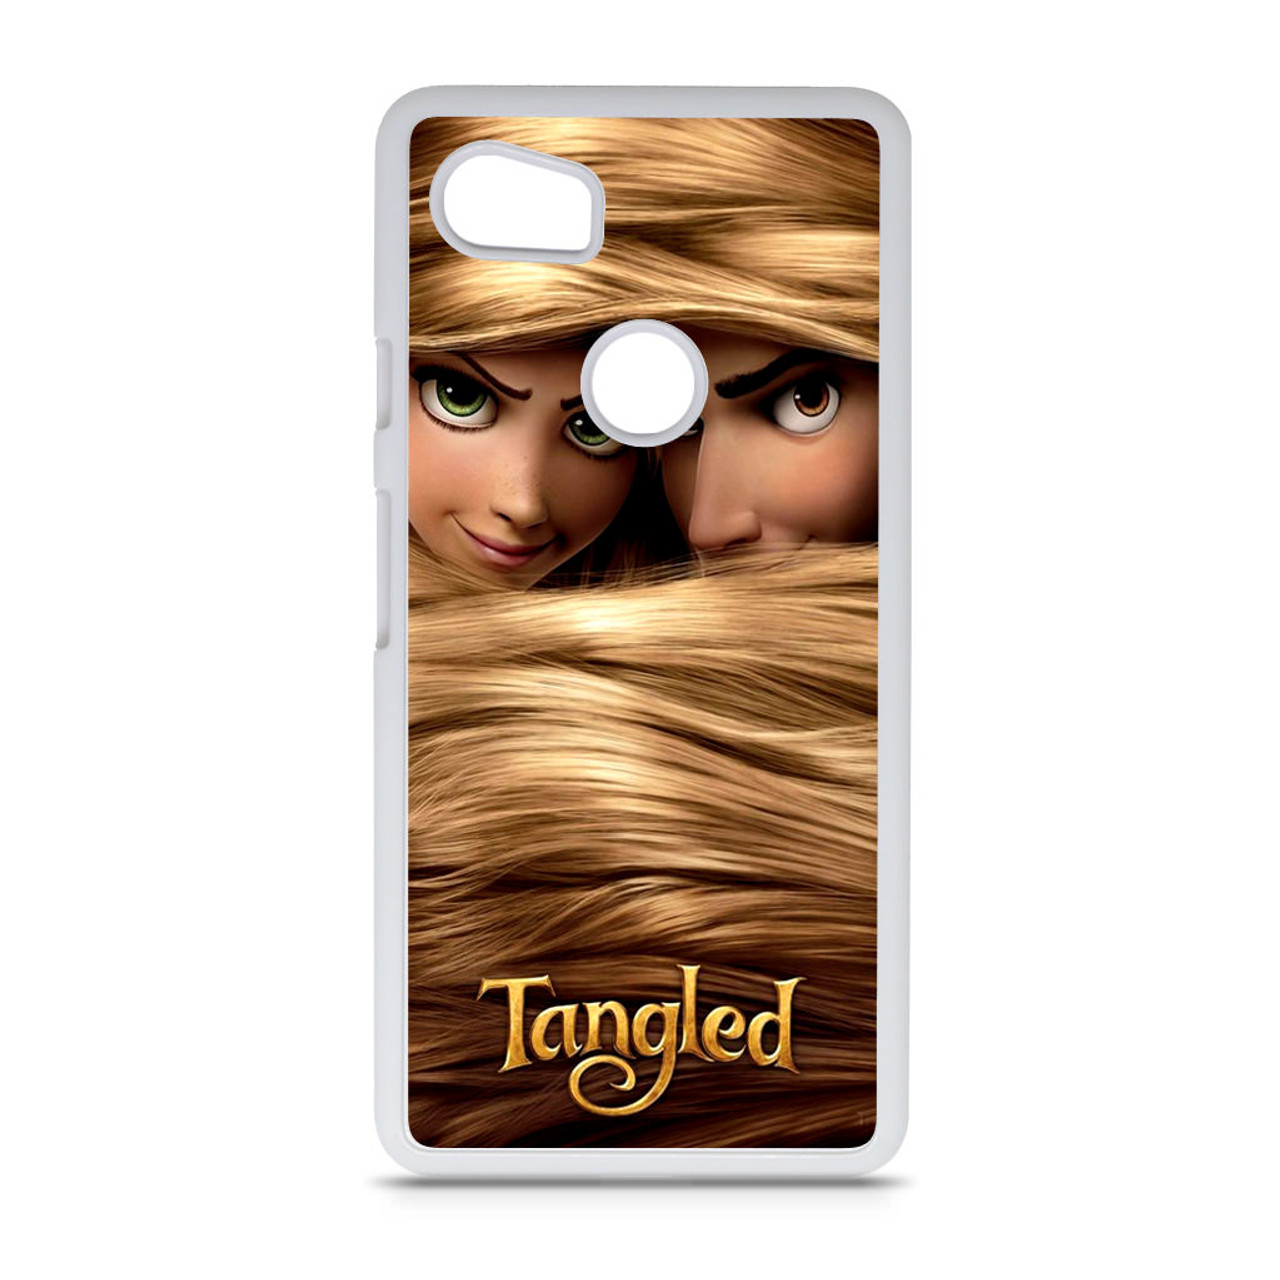 Disney Tangled 2 iphone case